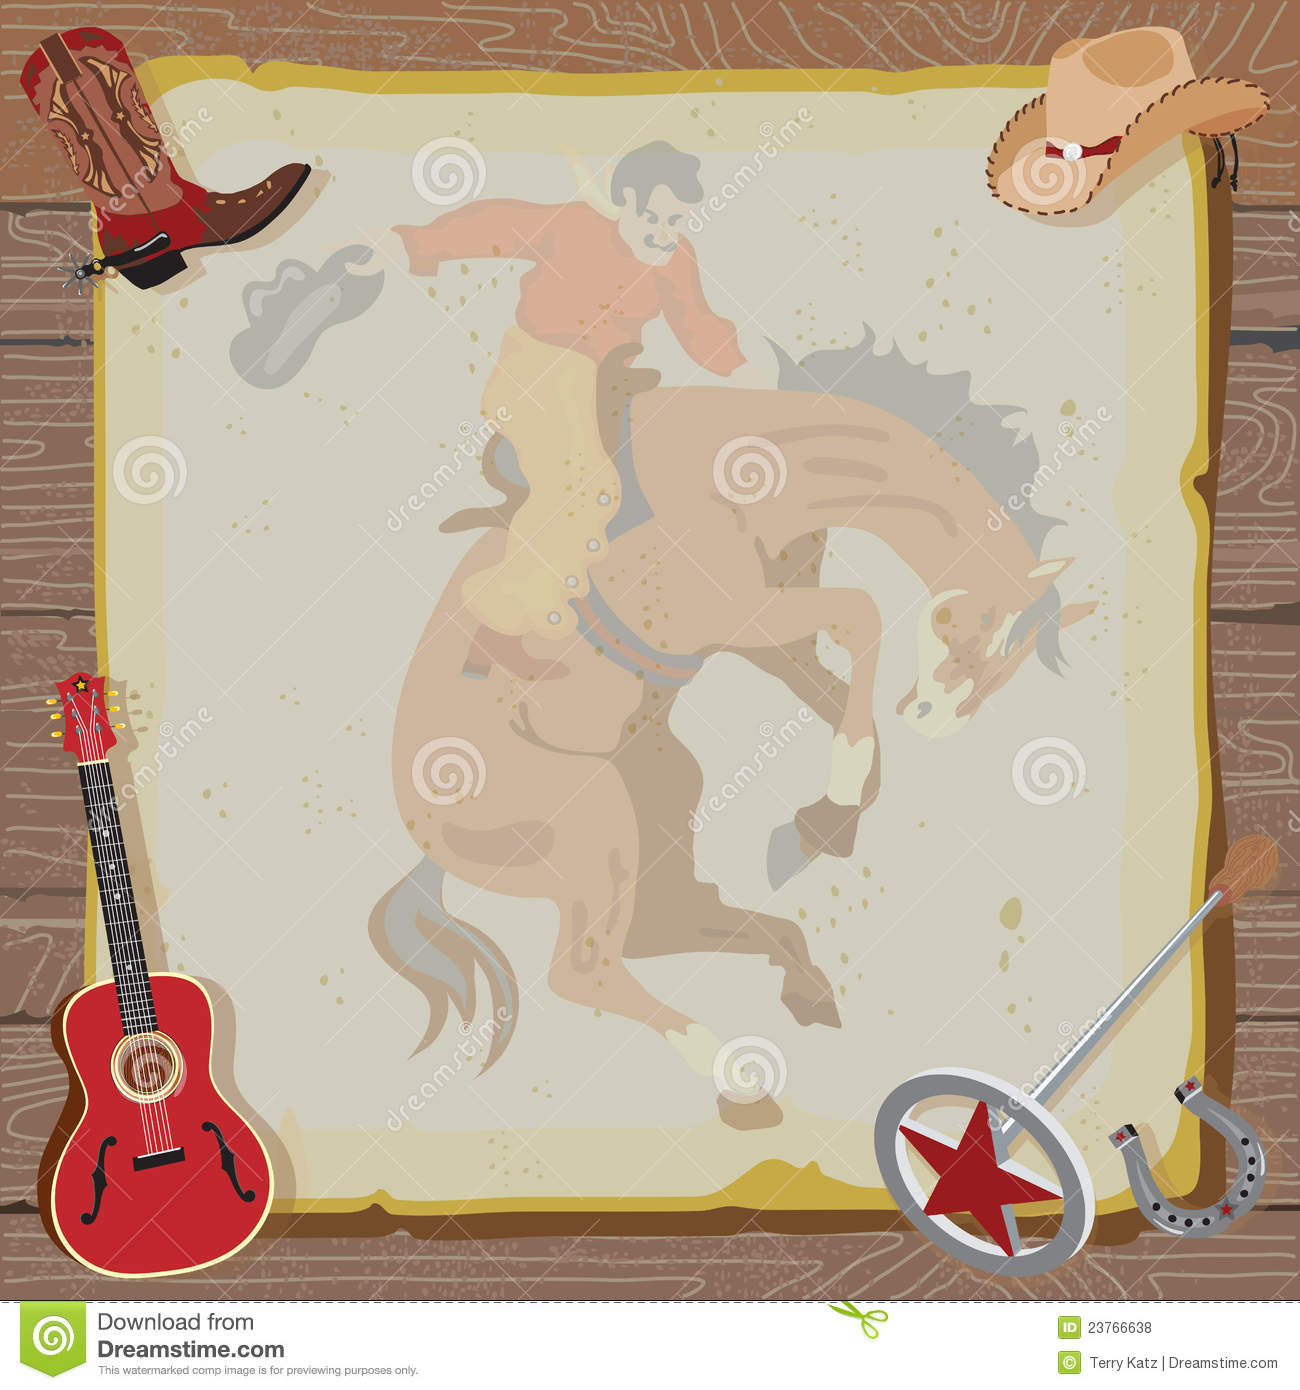 cowboy invitations - Vatoz.atozdevelopment.co